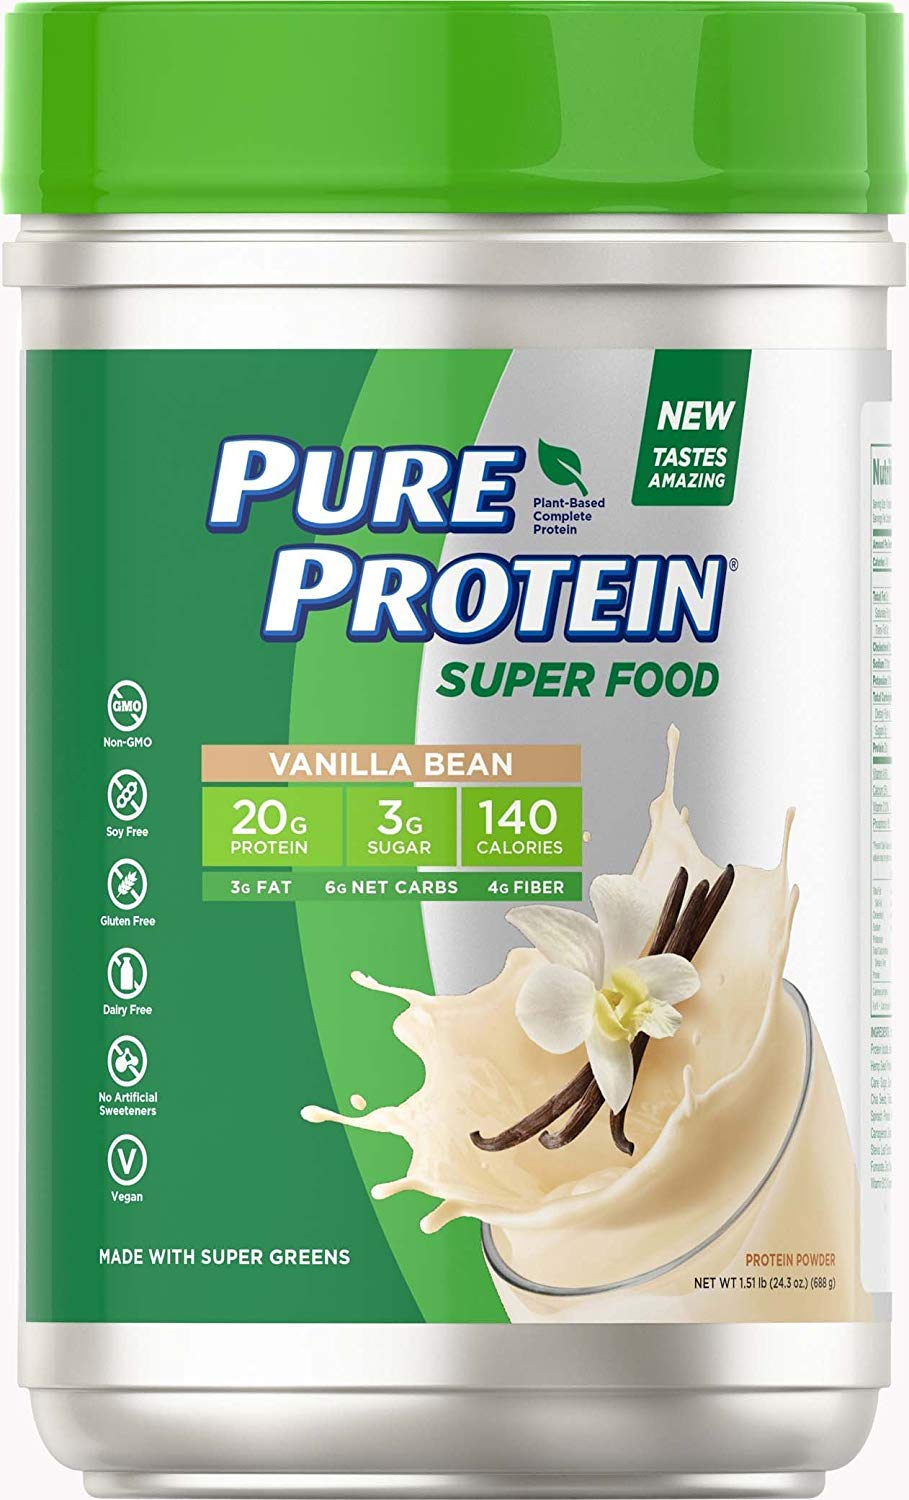 Pure Protein Vegan Plant Based Hemp and Pea Protein Powder, Gluten Free, Vanilla Bean, With Vitamin D and Zinc to Support Immune Health, 1.51 lbs